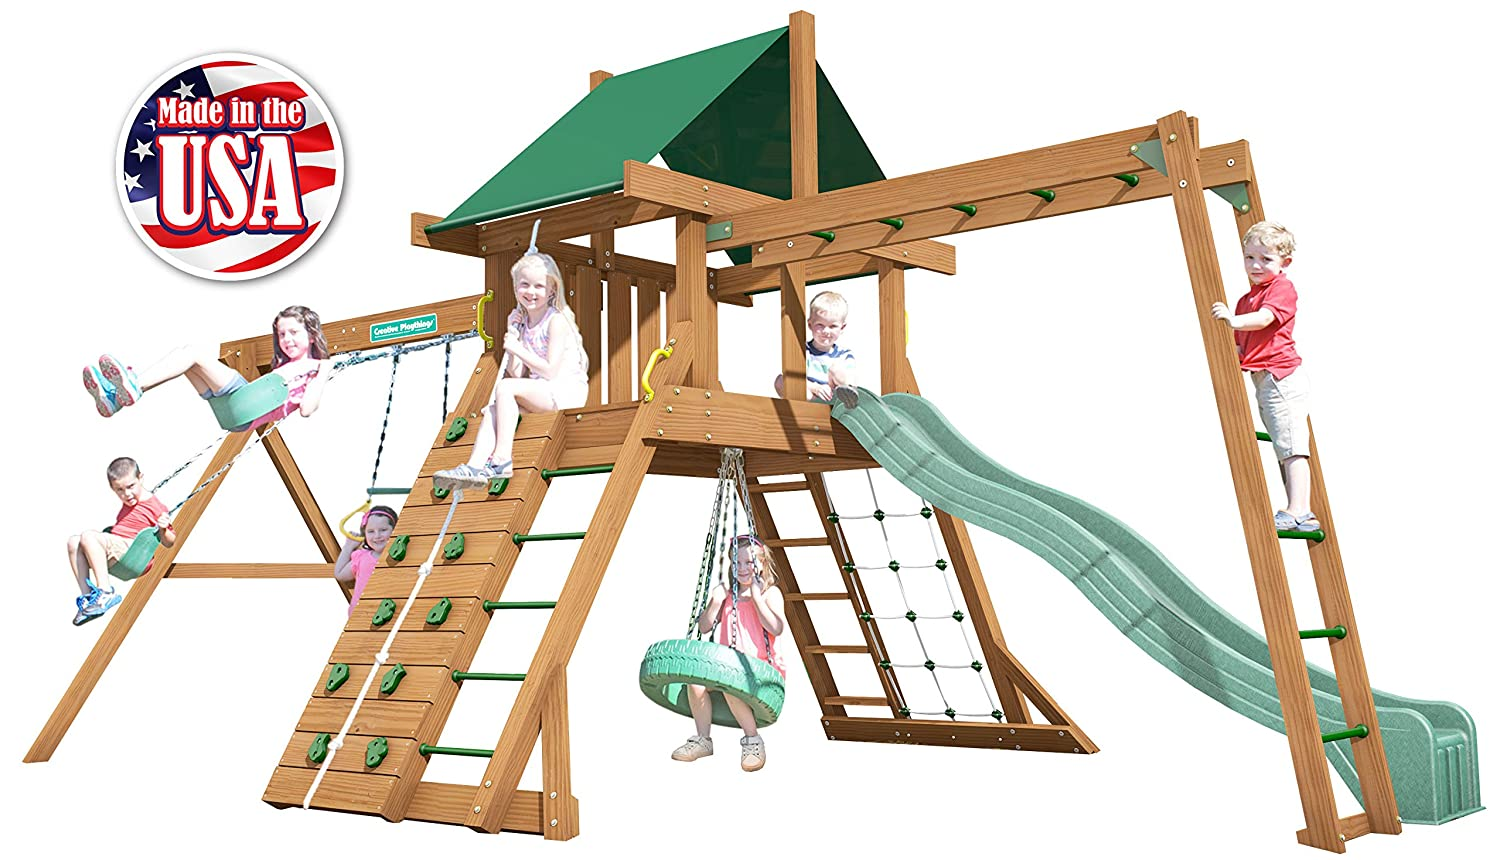 Creative Playthings (クラシックシリーズ)ノースブリッジPack 2スイングセットMade in the USA B07DP6PJJT